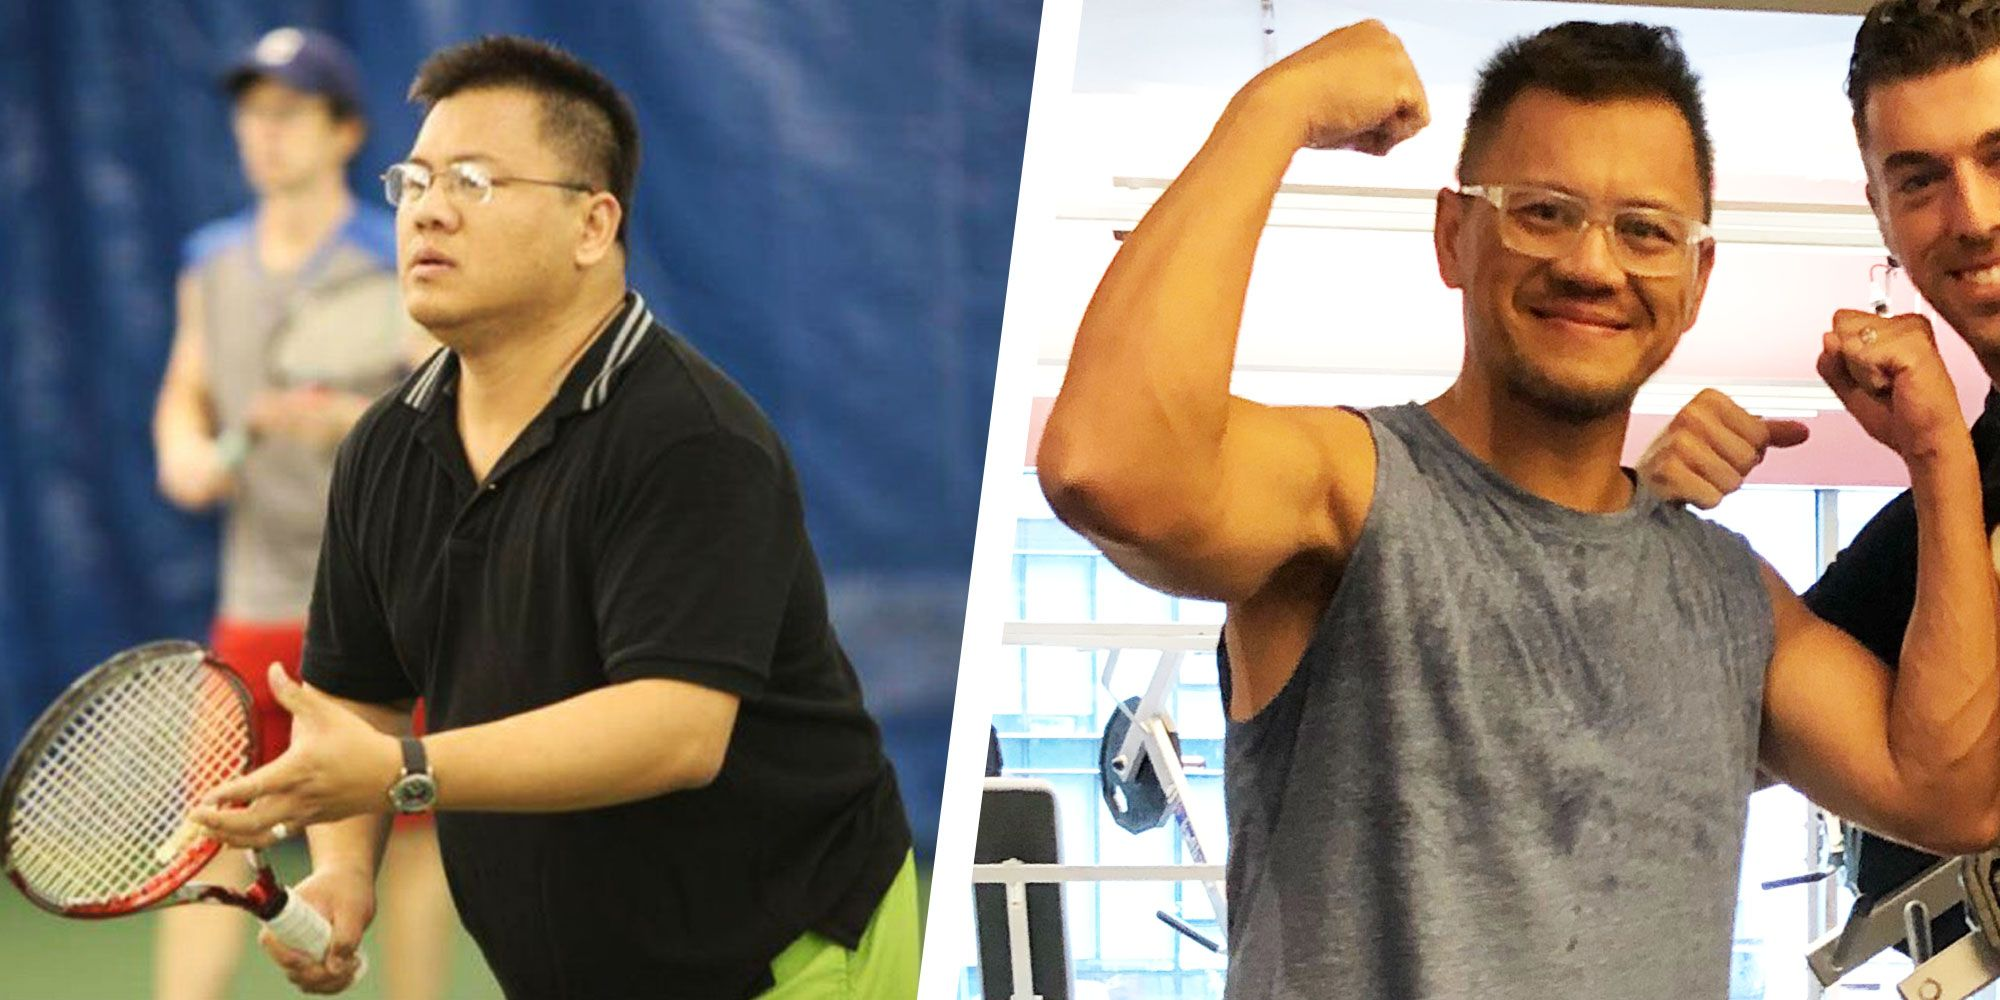 This Guy Overcame Serious Back Pain and Lost More Than 100 Pounds